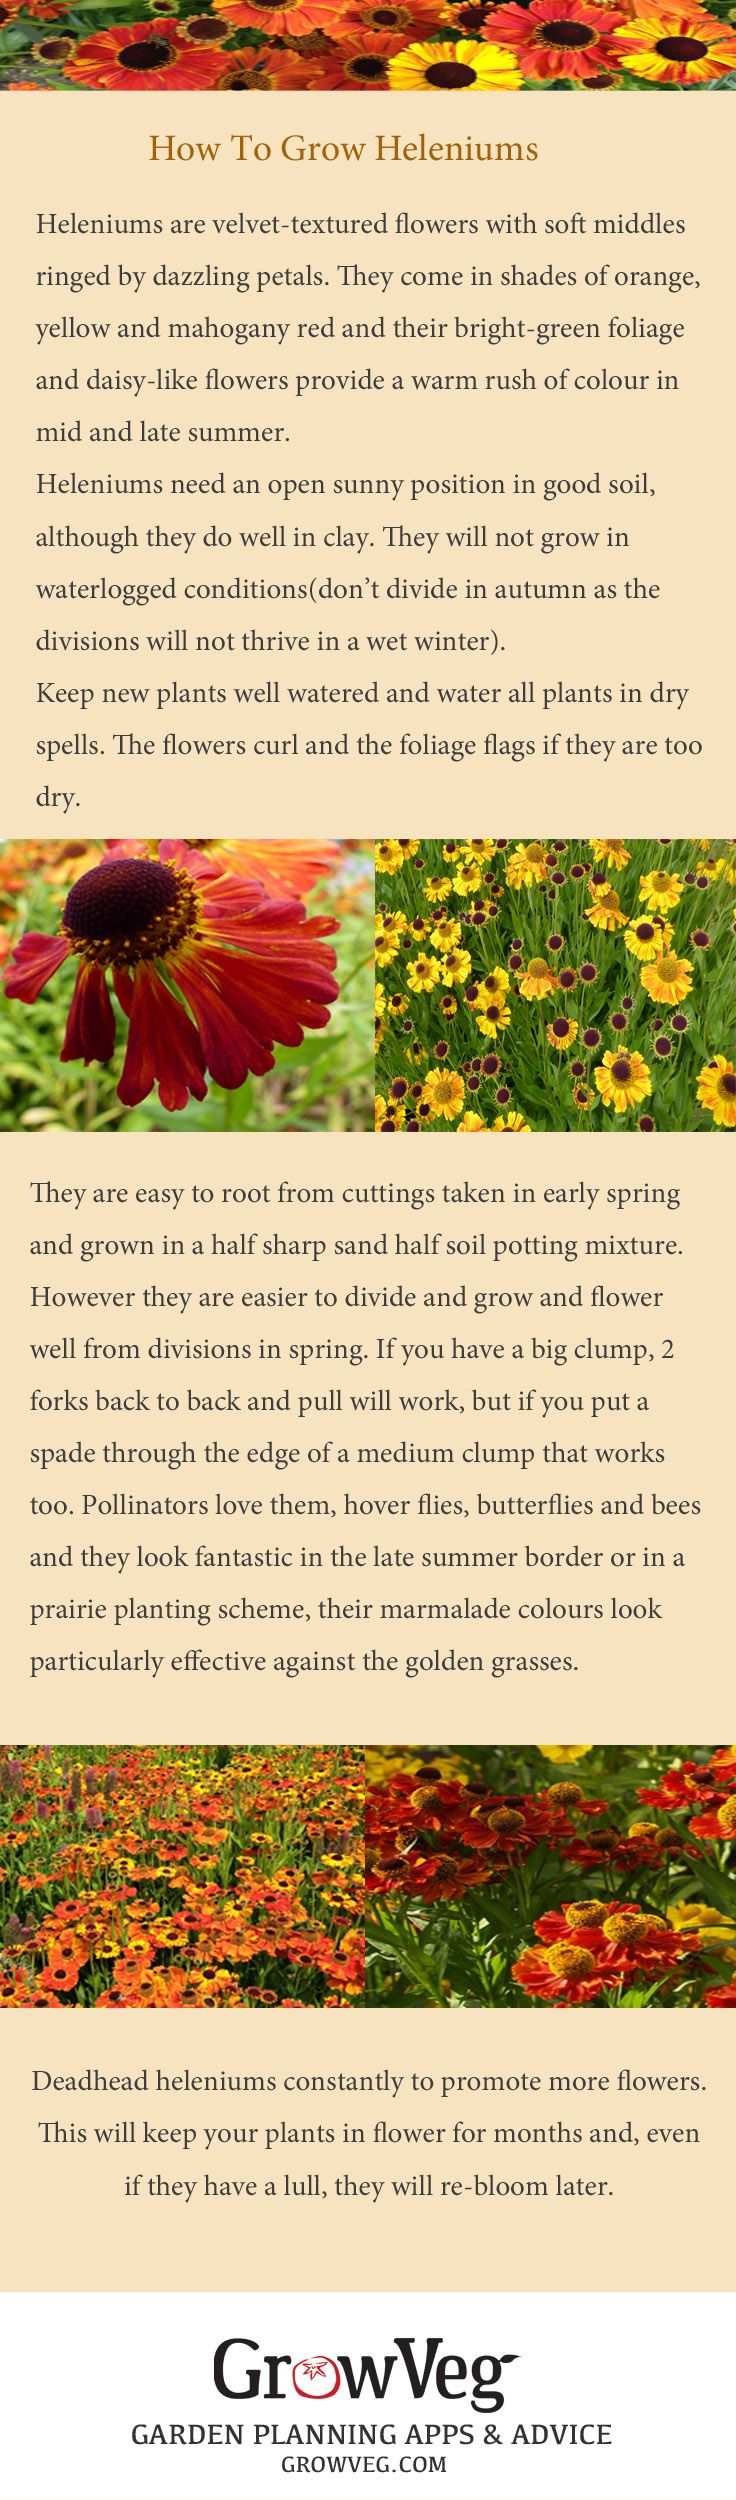 883 best images about garden paths on pinterest shade garden - Hoverflies Love Them As Do Bees And Butterflies With Their Marmalade Shades They Brighten Up Even The Dullest Of Late Summer